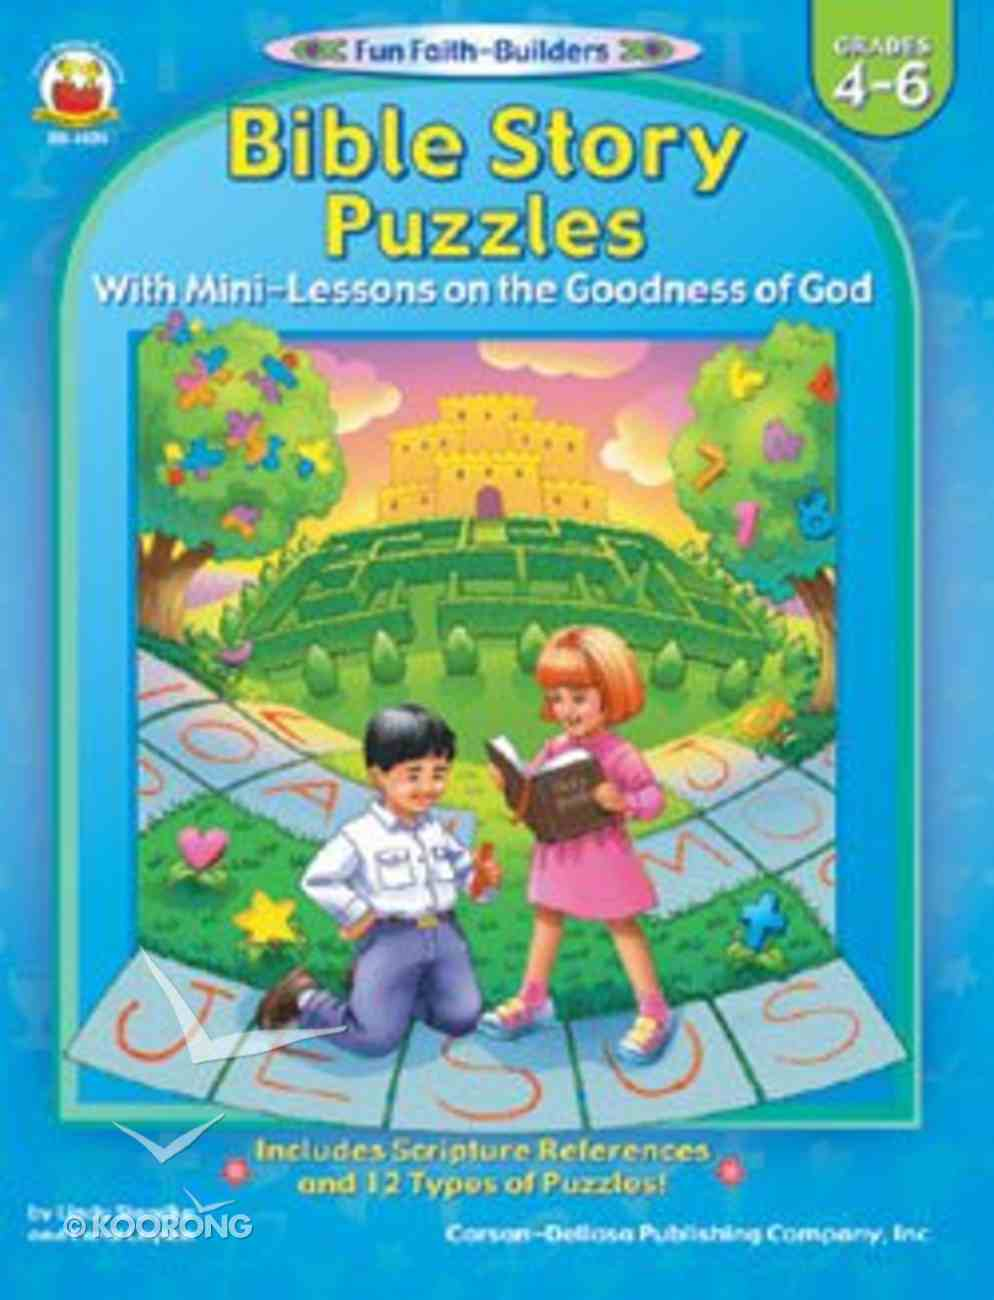 Bible Story Puzzles (Reproducible; Grades 4-6) (Fun Faith-builders Series) Paperback